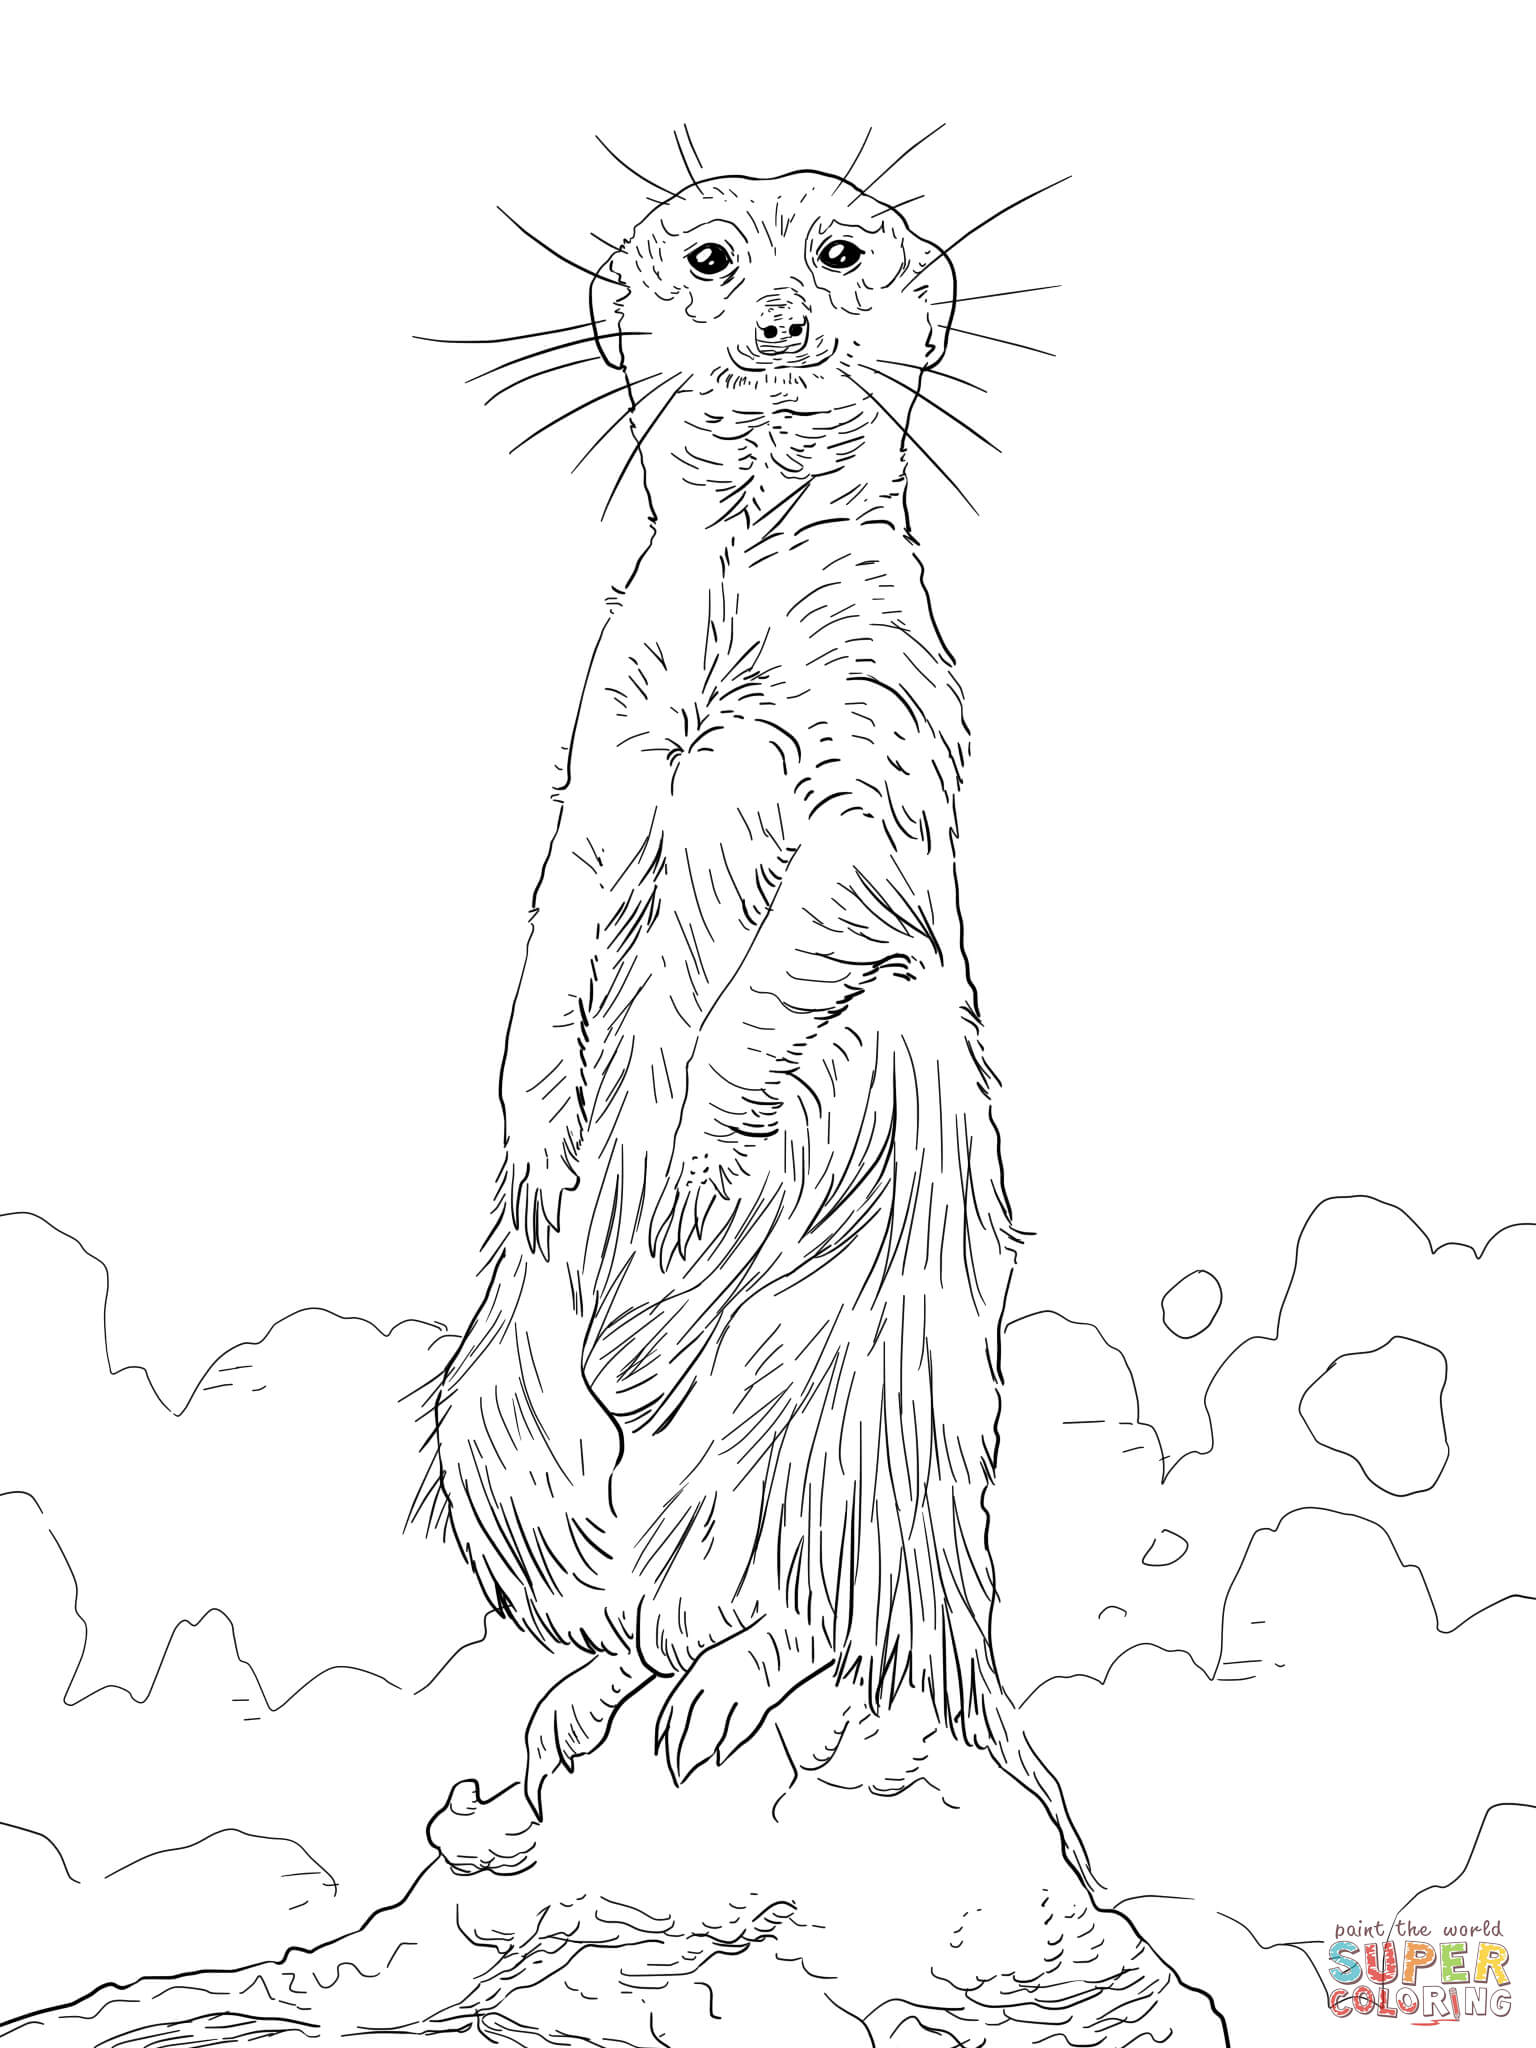 meerkat pictures to colour printable meerkat coloring page free pdf download at http colour meerkat pictures to